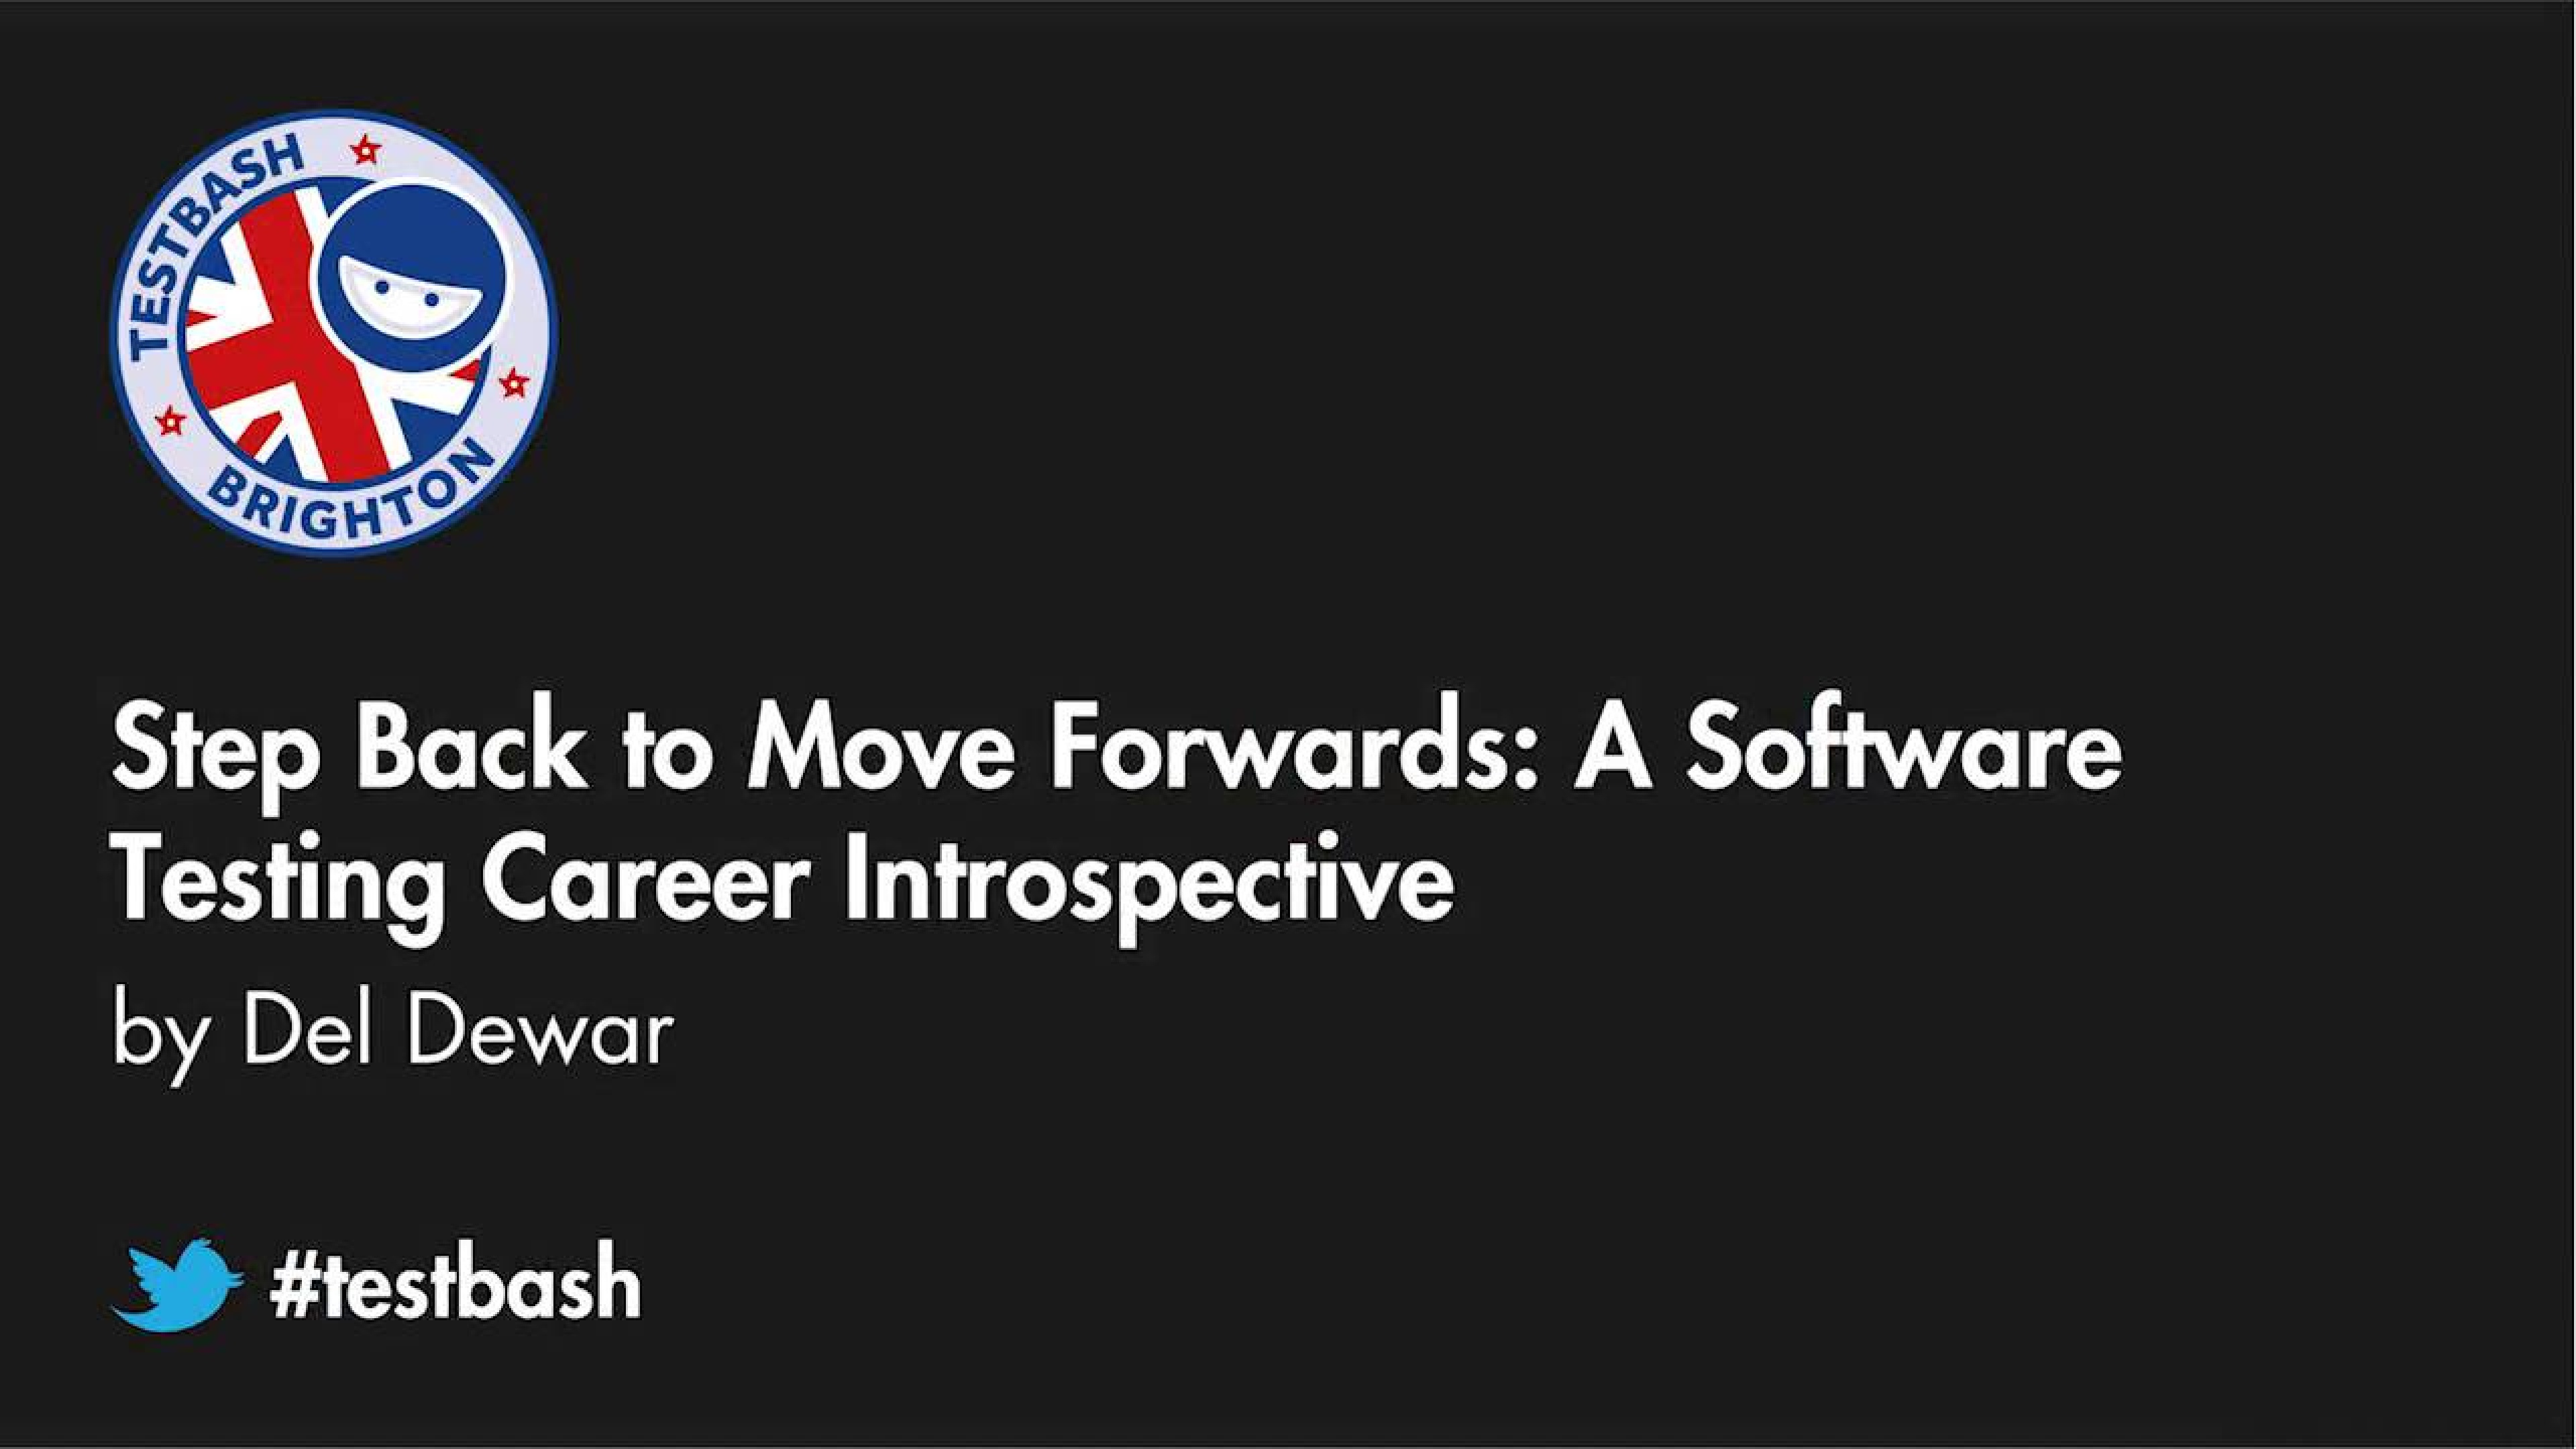 Step Back to Move Forwards A Software Testing Career Introspective - Del Dewar